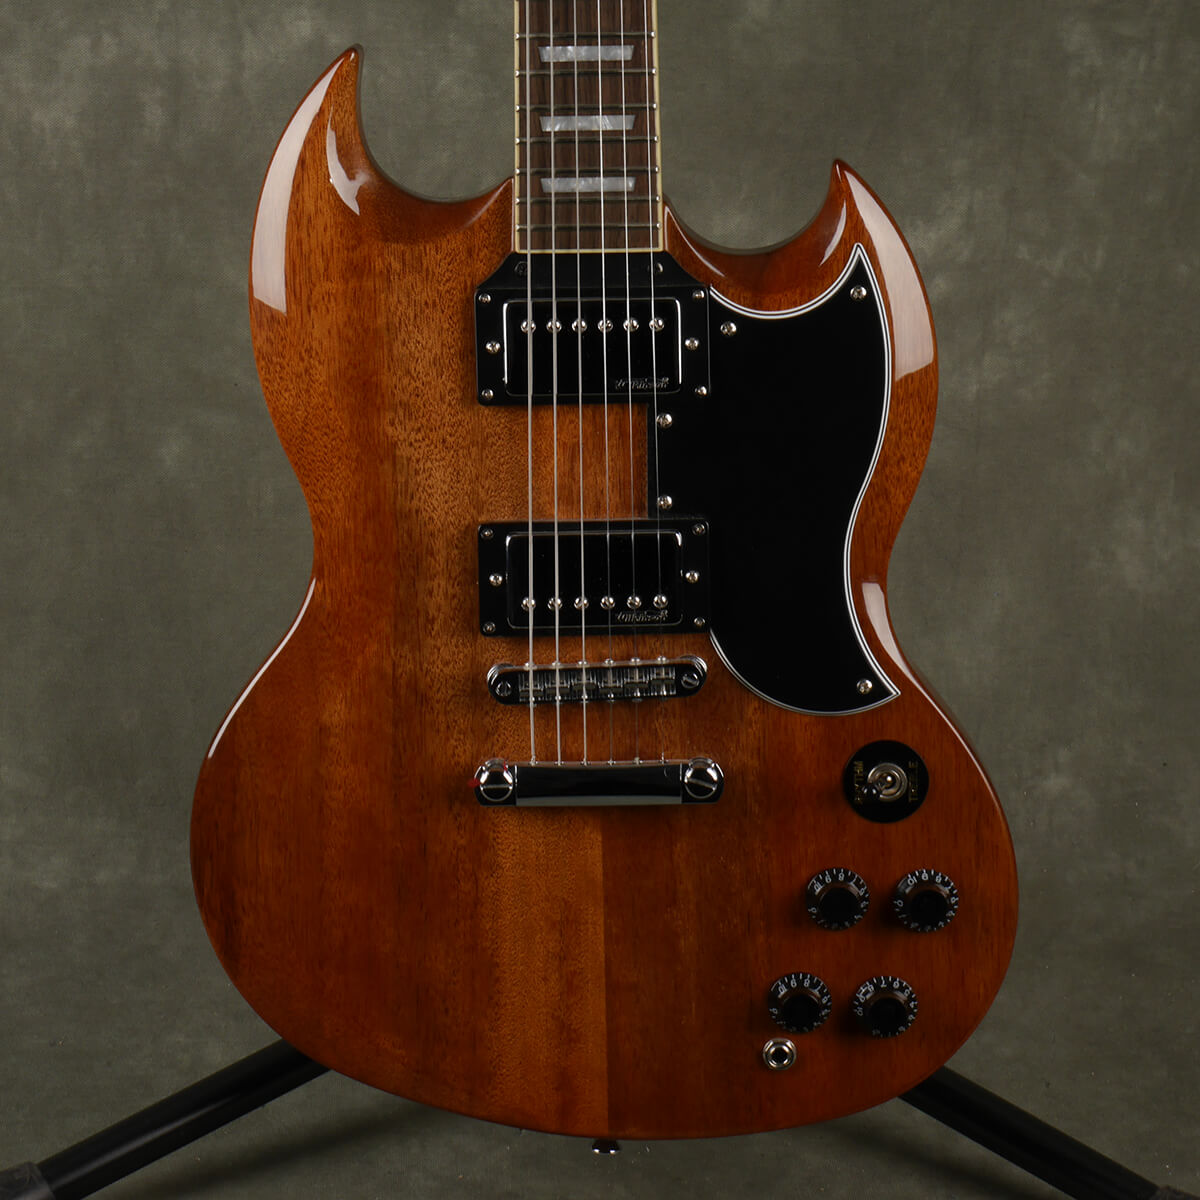 Vintage VS6 Mahogany SG Style Electric Guitar - Brown - 2nd Hand